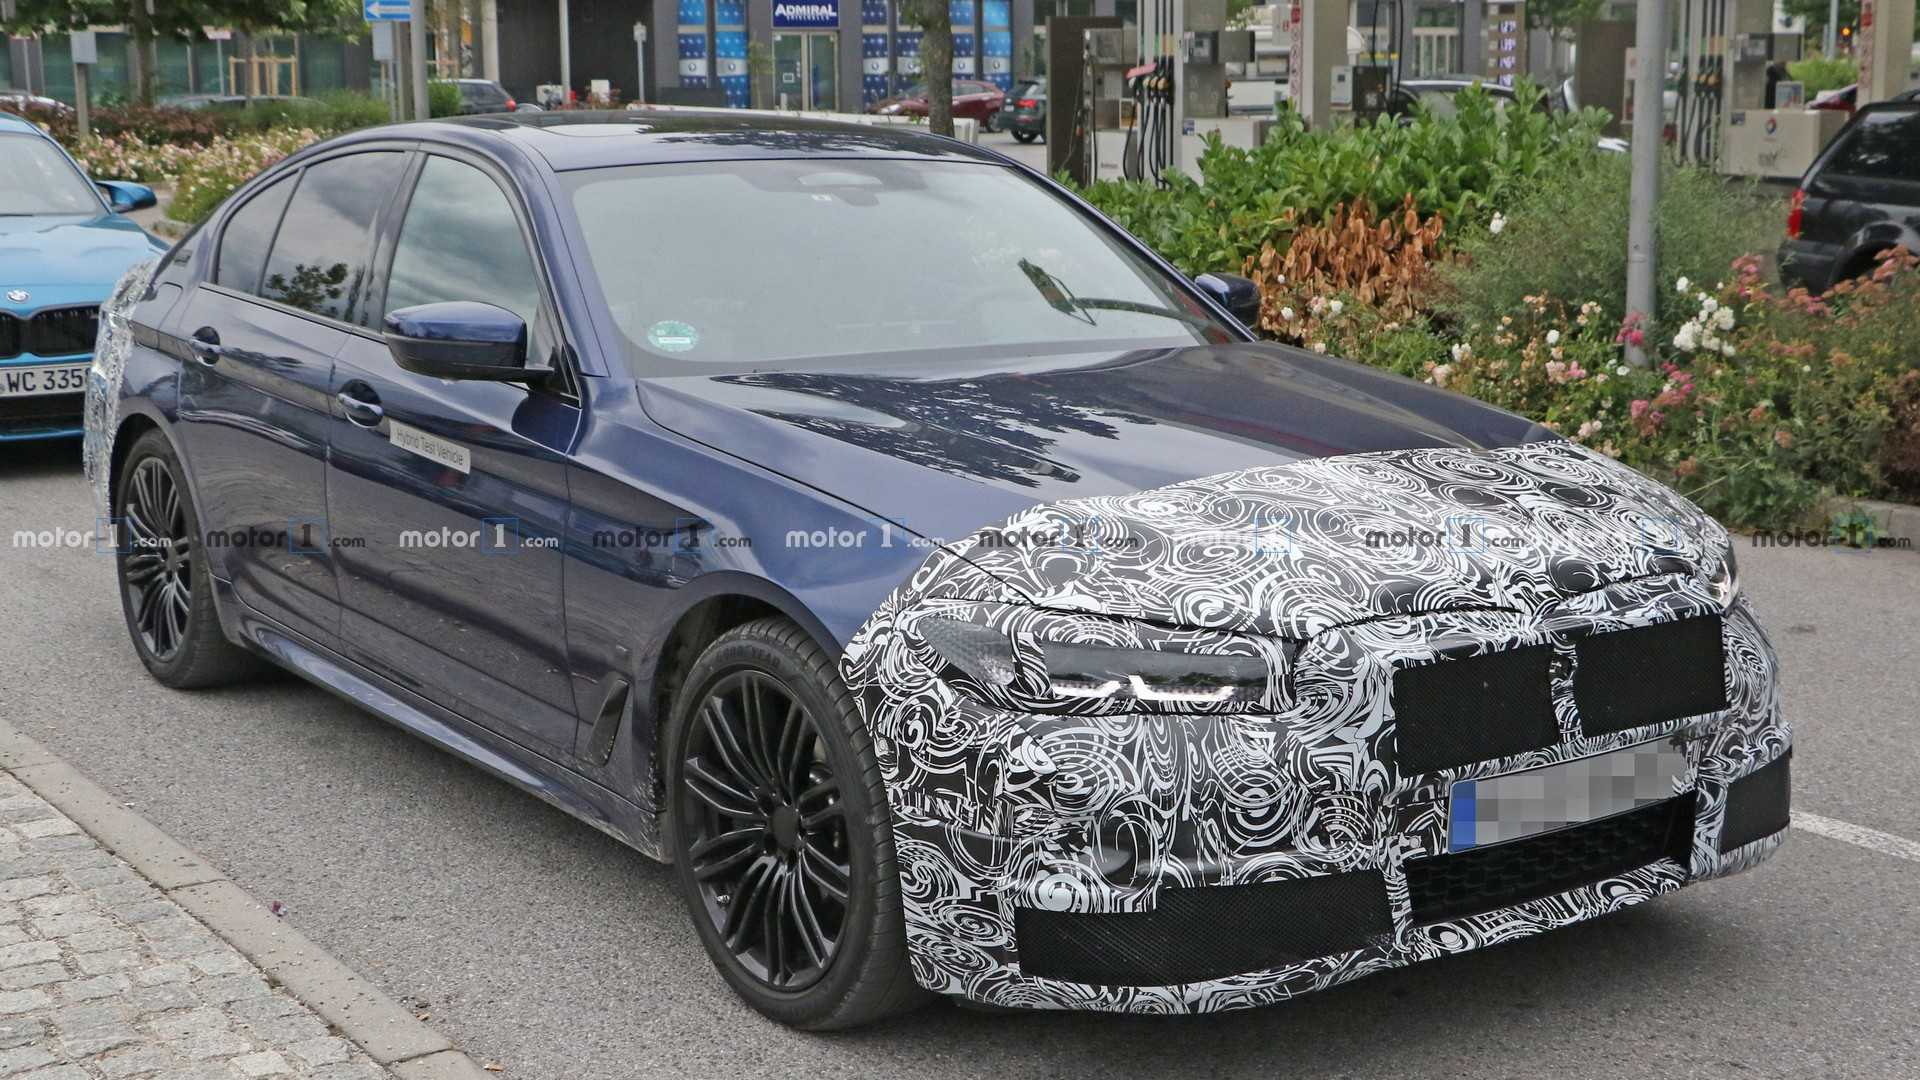 85 Gallery of Bmw G30 Lci 2020 Prices with Bmw G30 Lci 2020